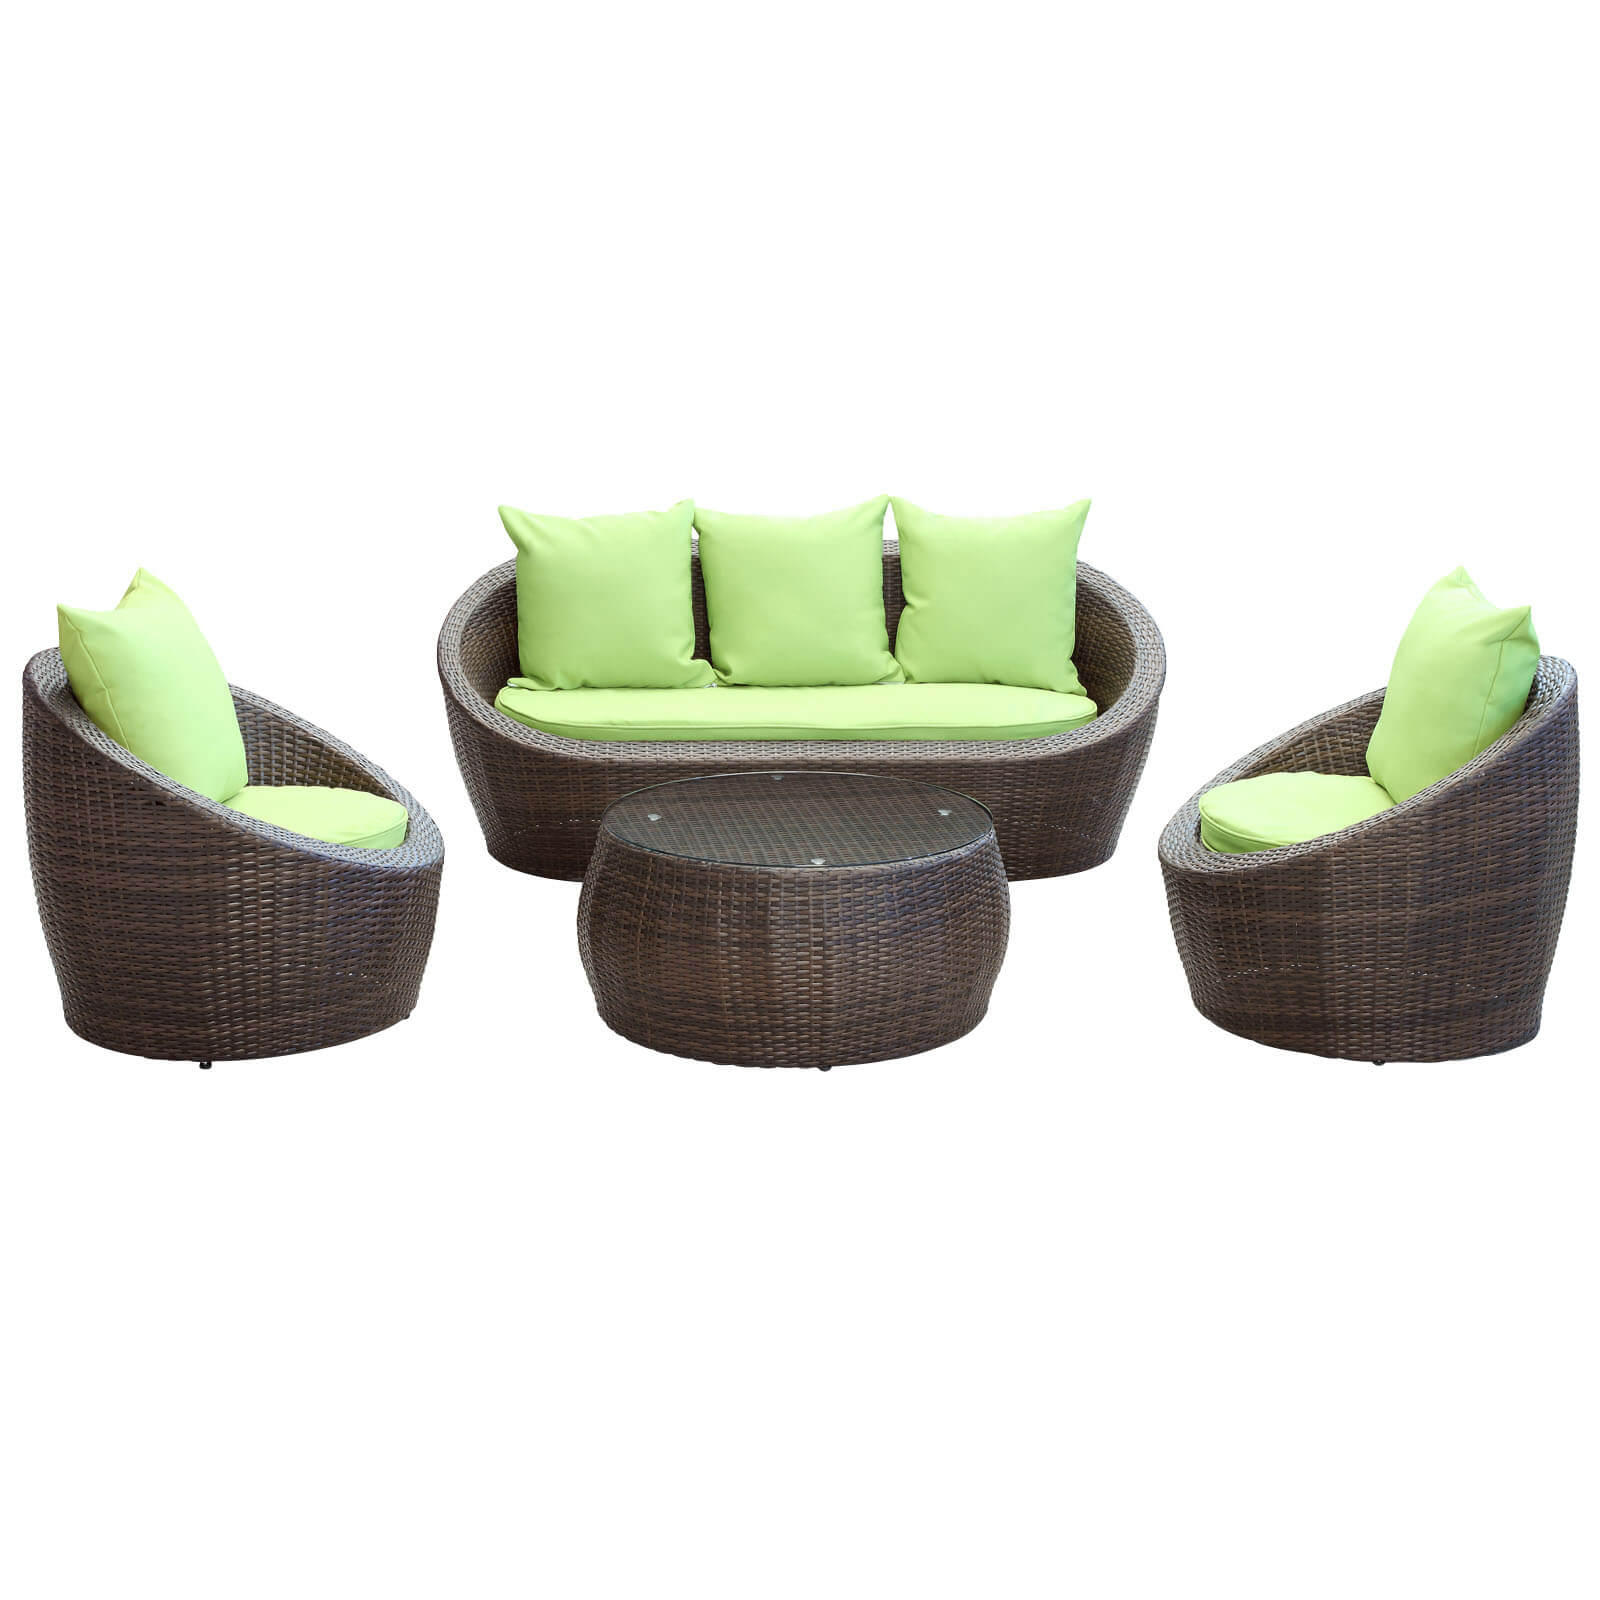 Avo 4 Piece Outdoor Patio Sofa Set Brown Green Buy line at